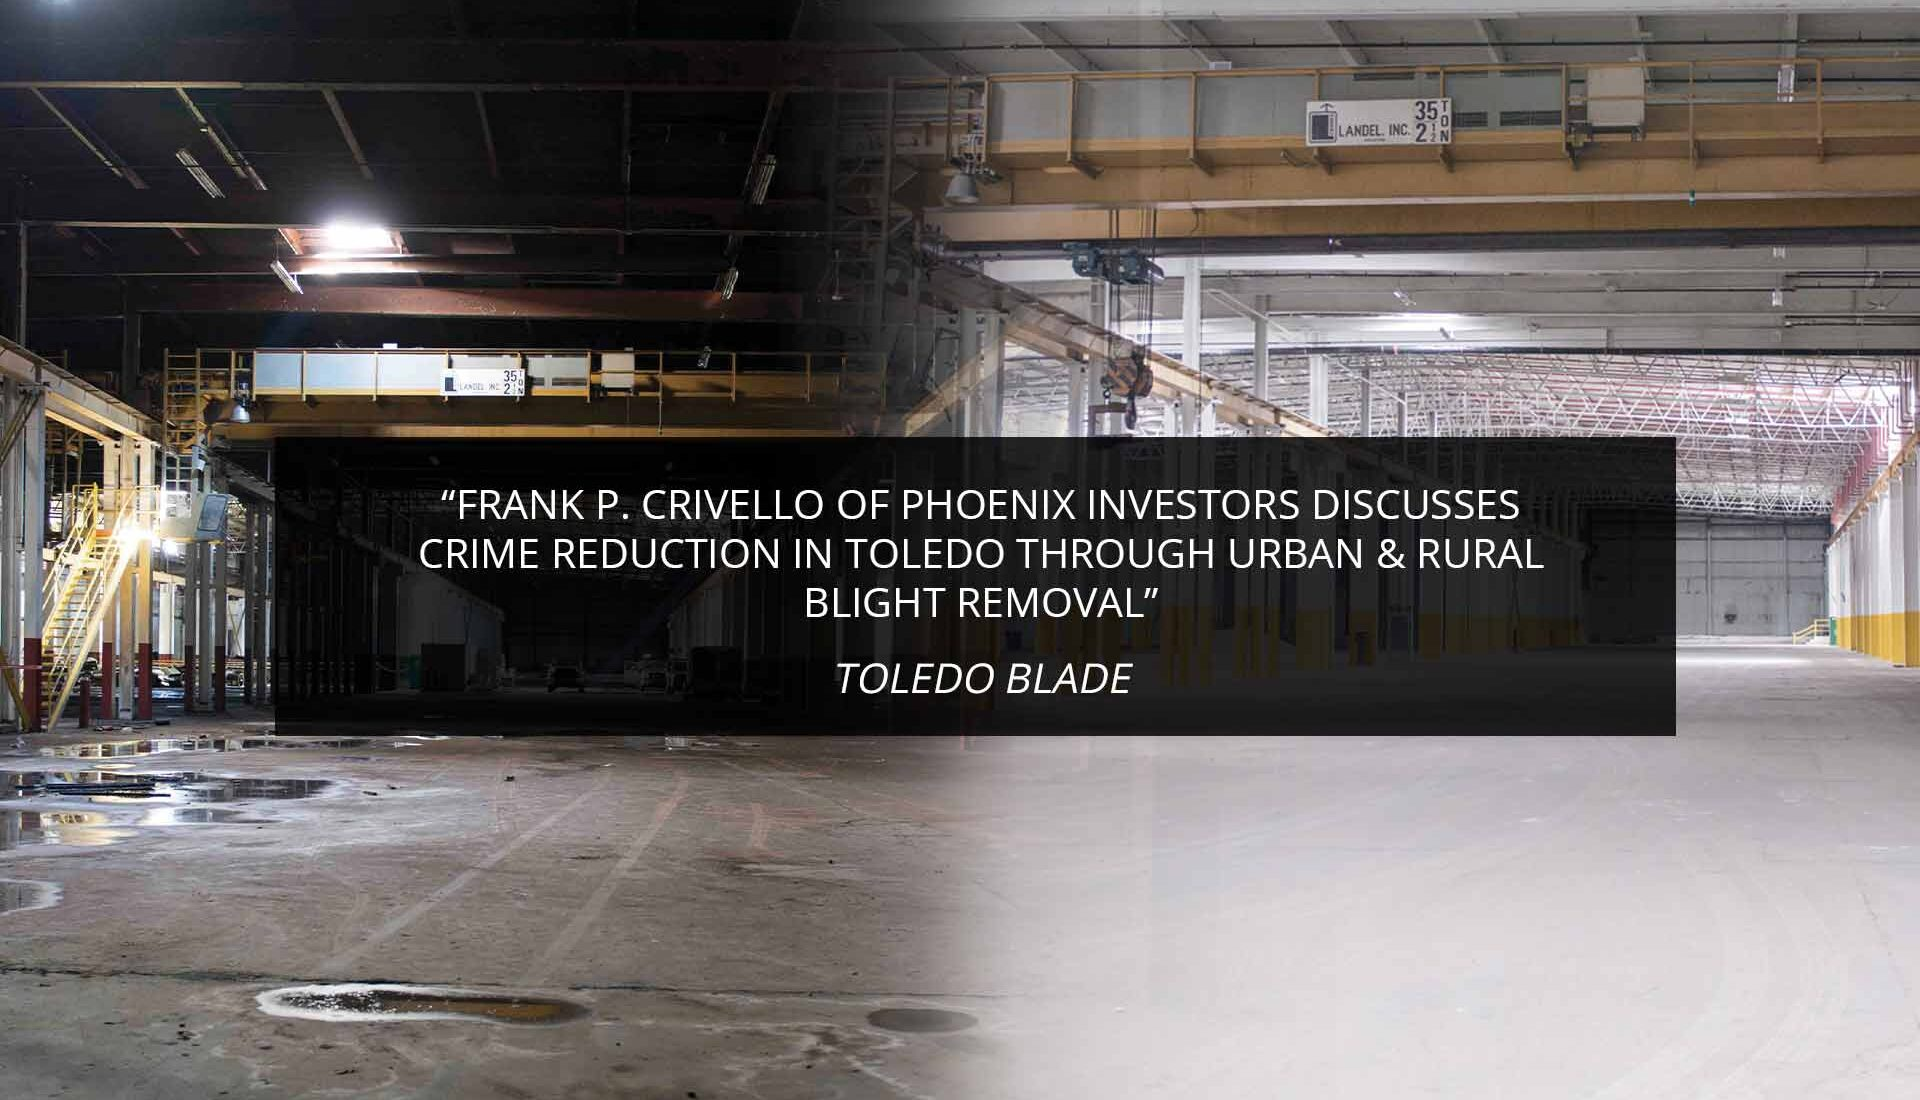 Frank P. Crivello of Phoenix Investors Discusses Crime Reduction in Toledo Through Urban & Rural Blight Removal